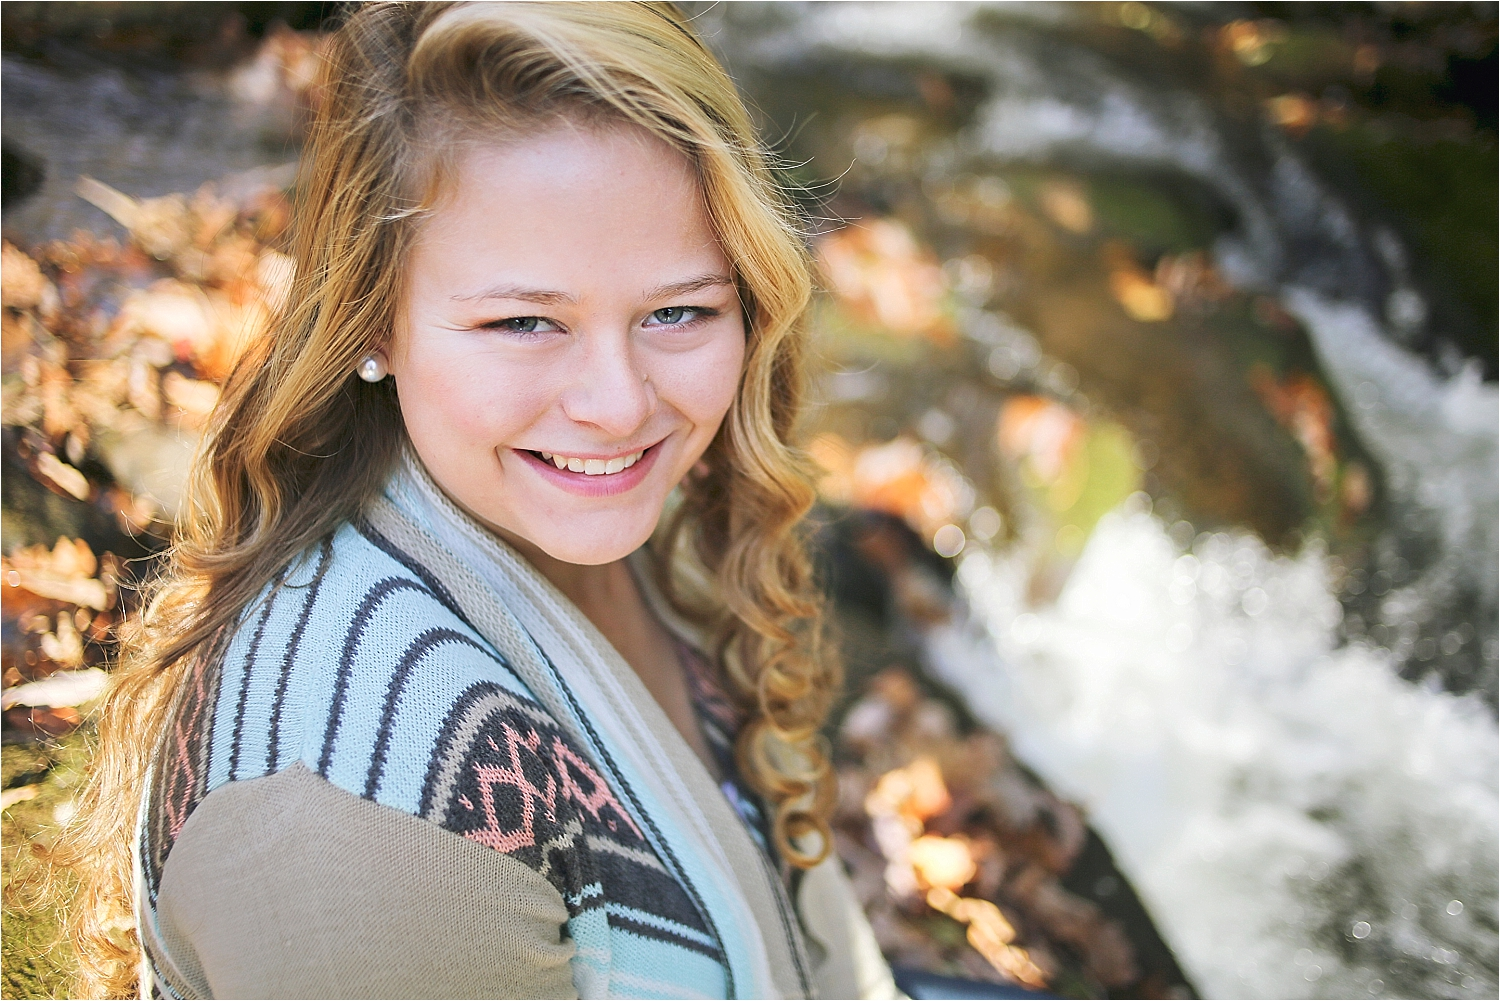 Christiansburg-High-School-Senior-Portrait-Photographer_0006.jpg